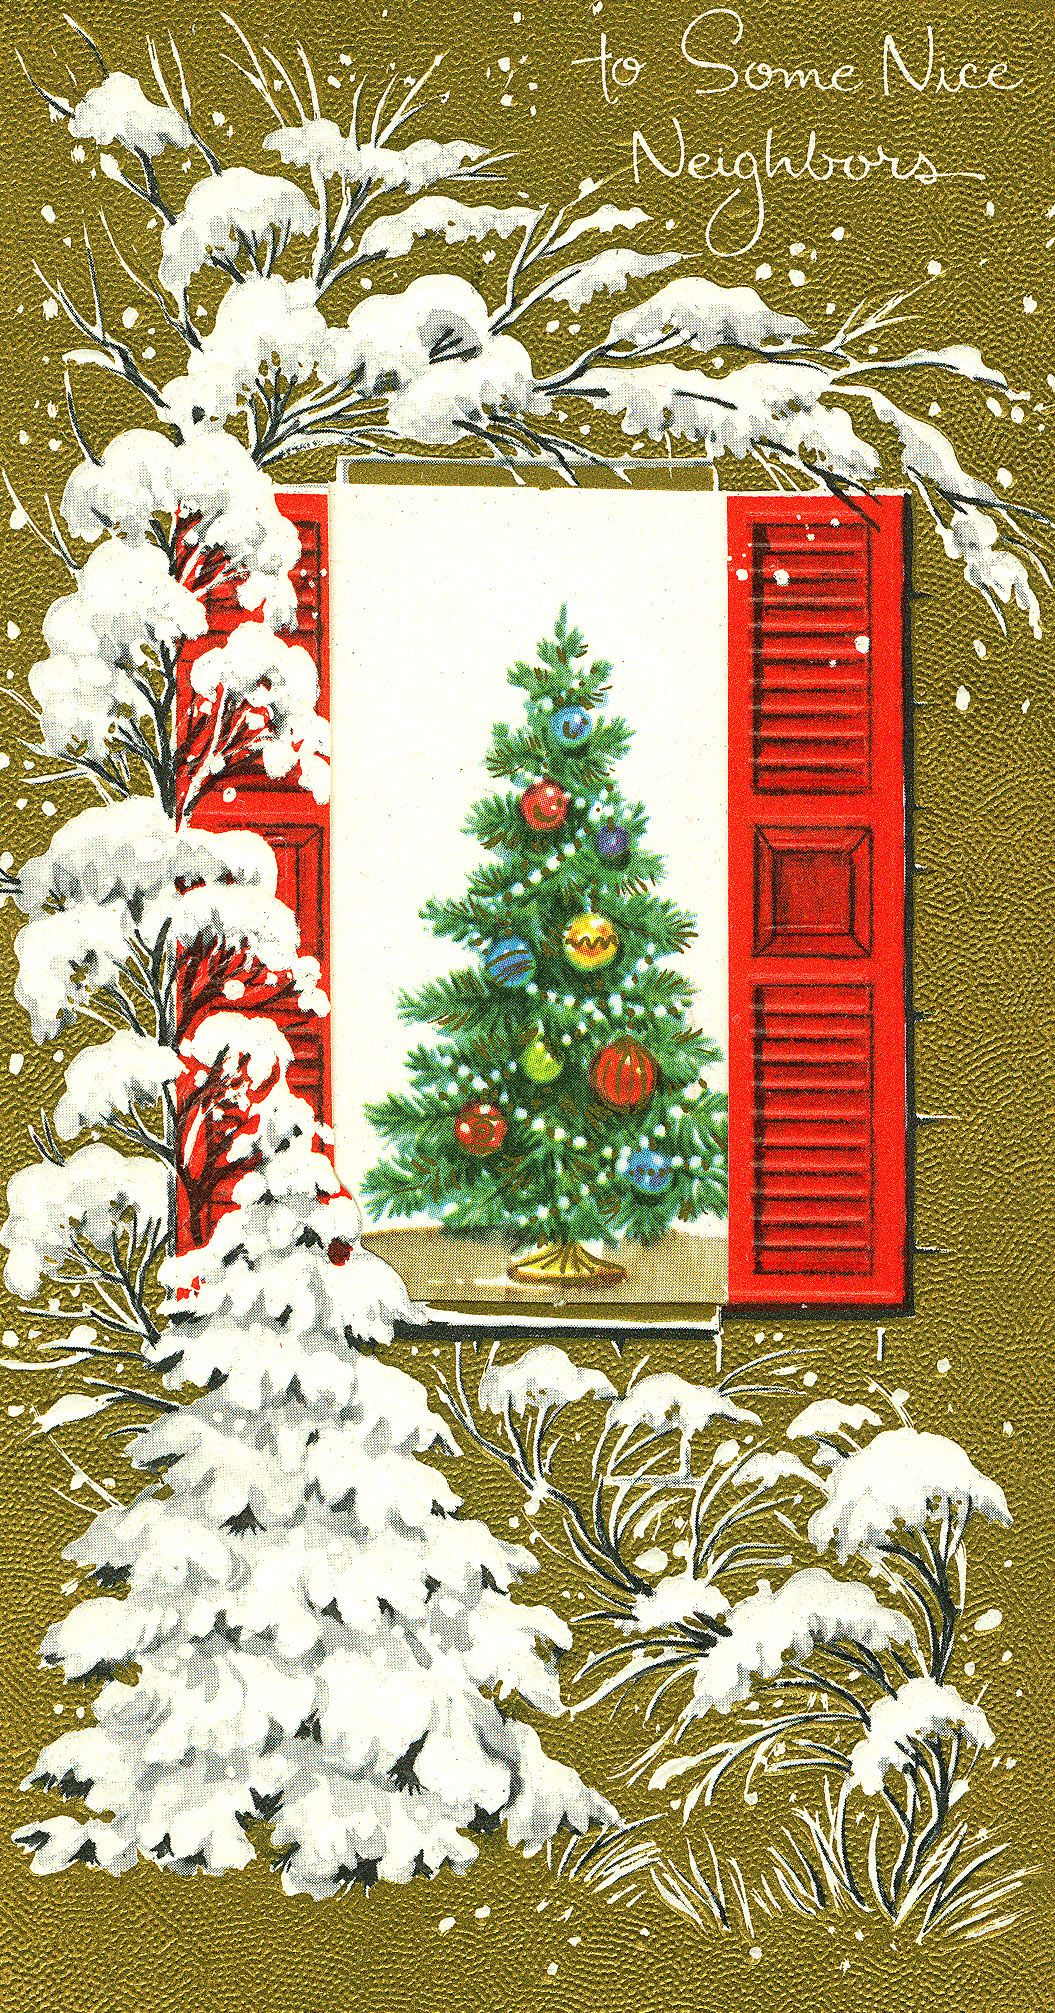 #Christmas #Vintage #Greeting #Snow #Ephemera #Tree #Home